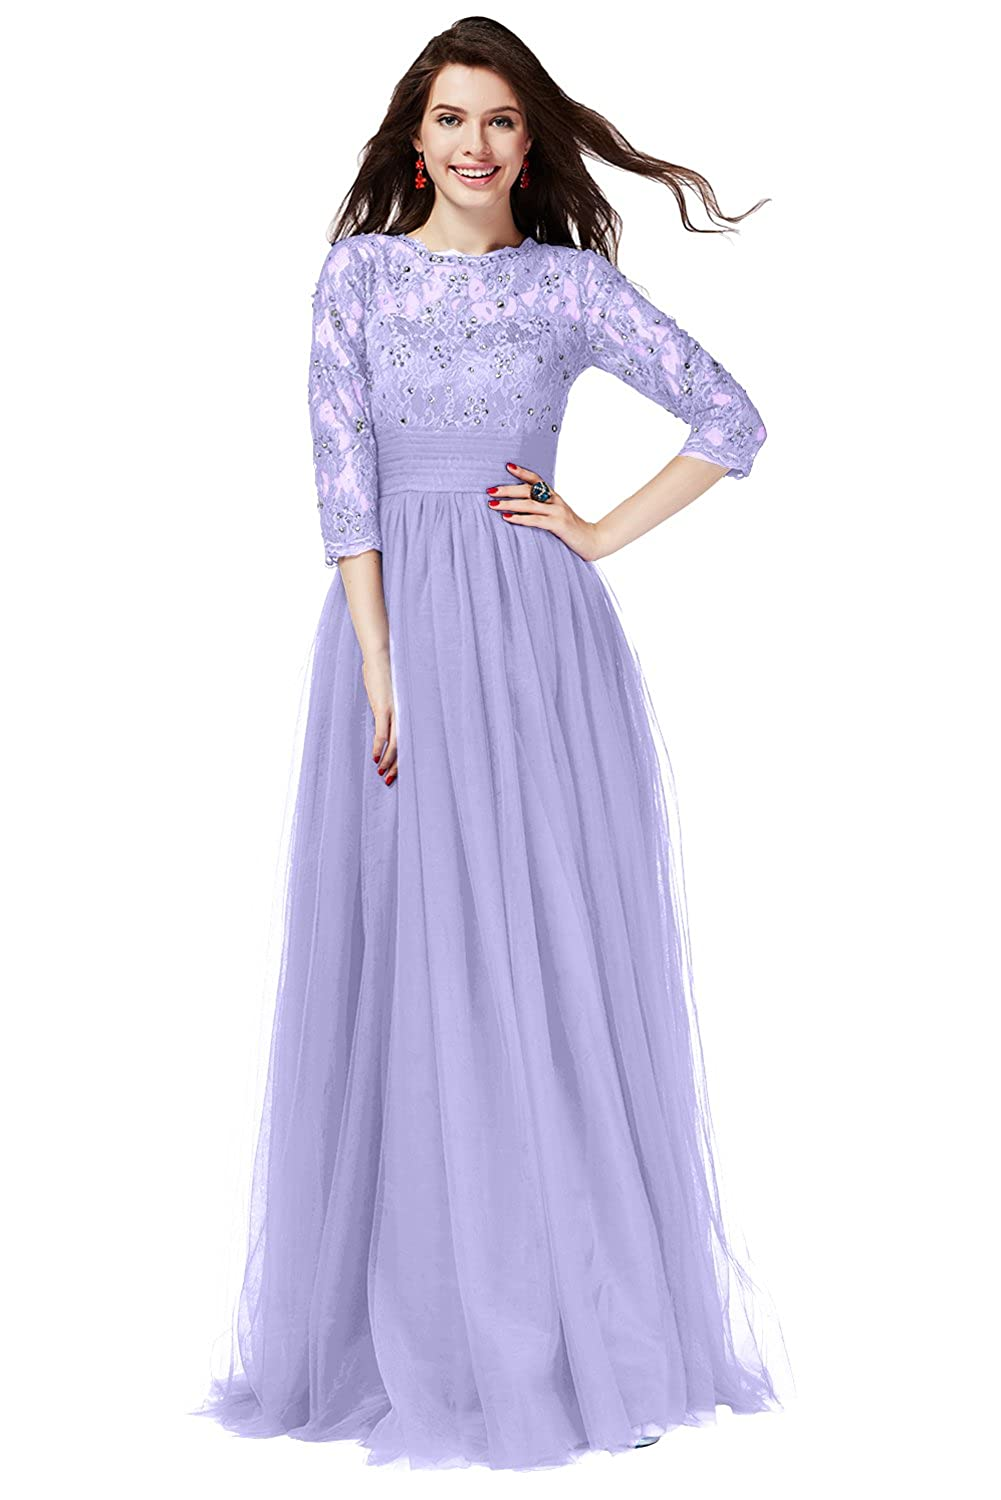 Lavender Long QY Bride Gorgeous Lace Bridal Party Dresses for Bridesmaid 3 4 Sleeve